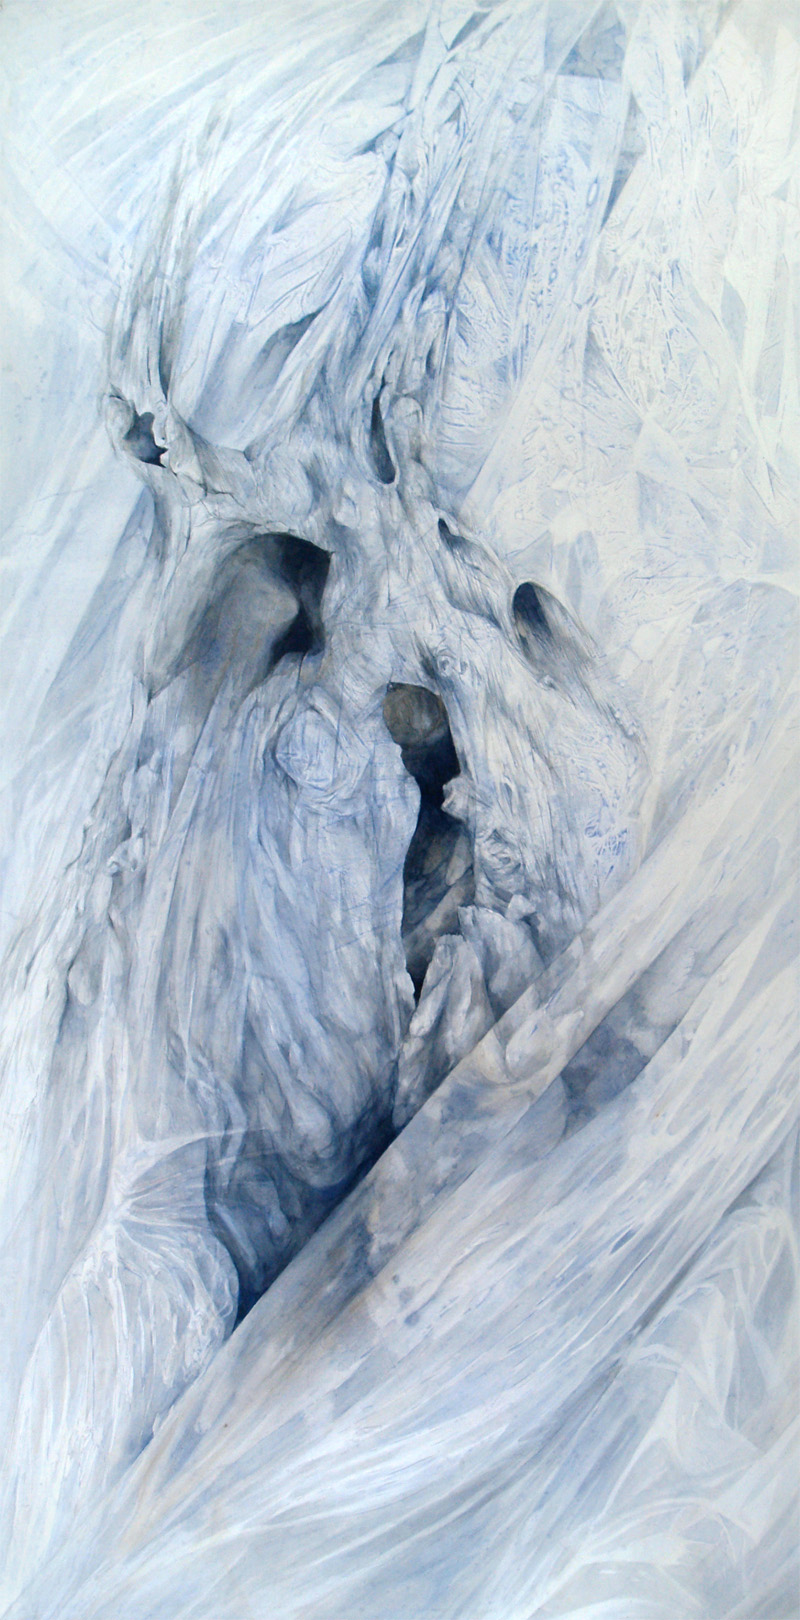 Fossil, watercolour on stretched paper, 210 x 106 cm. 2010